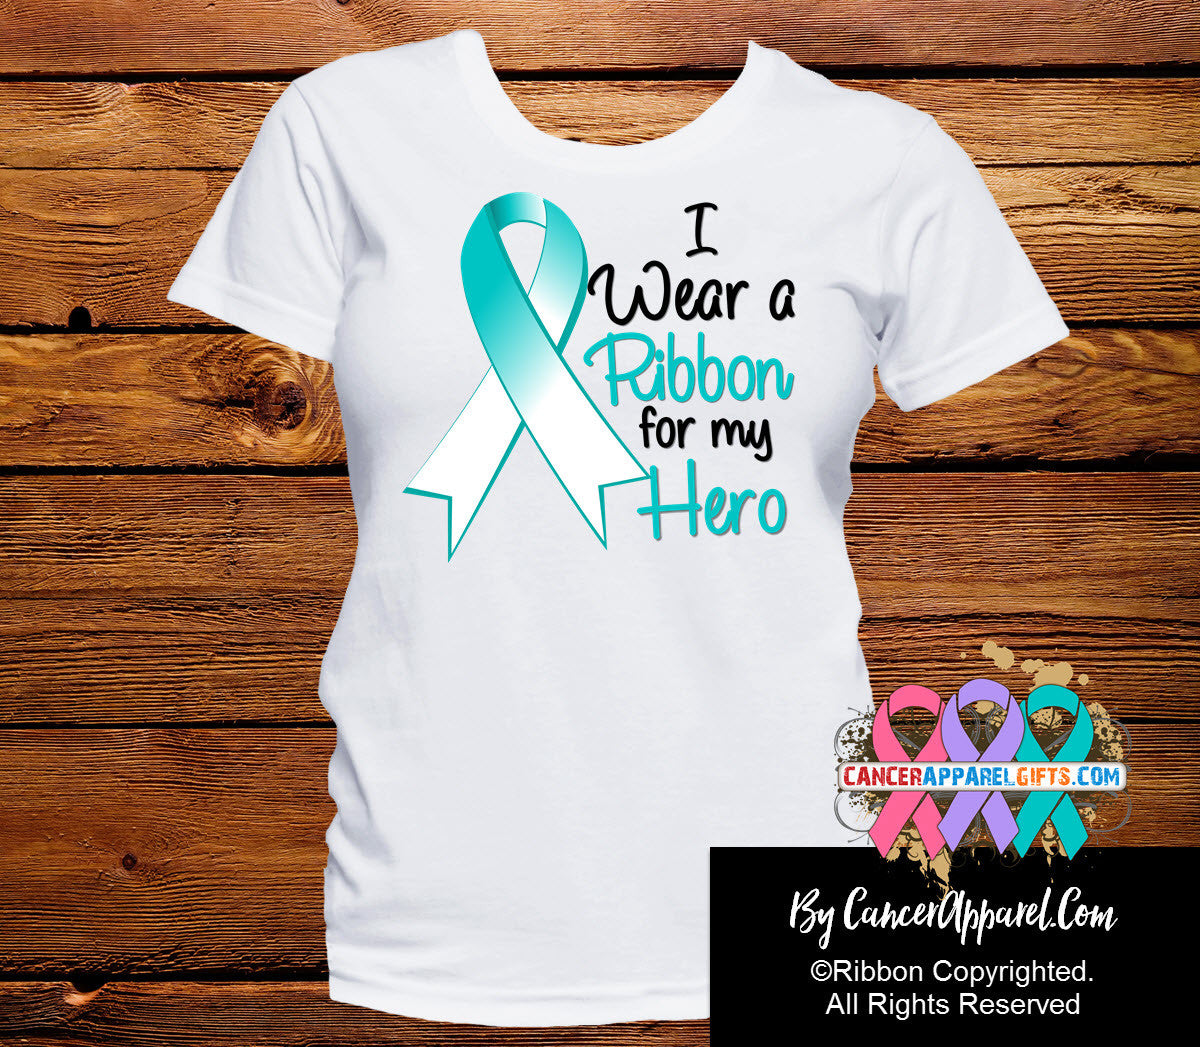 Cervical Cancer For My Hero Shirts - Cancer Apparel and Gifts